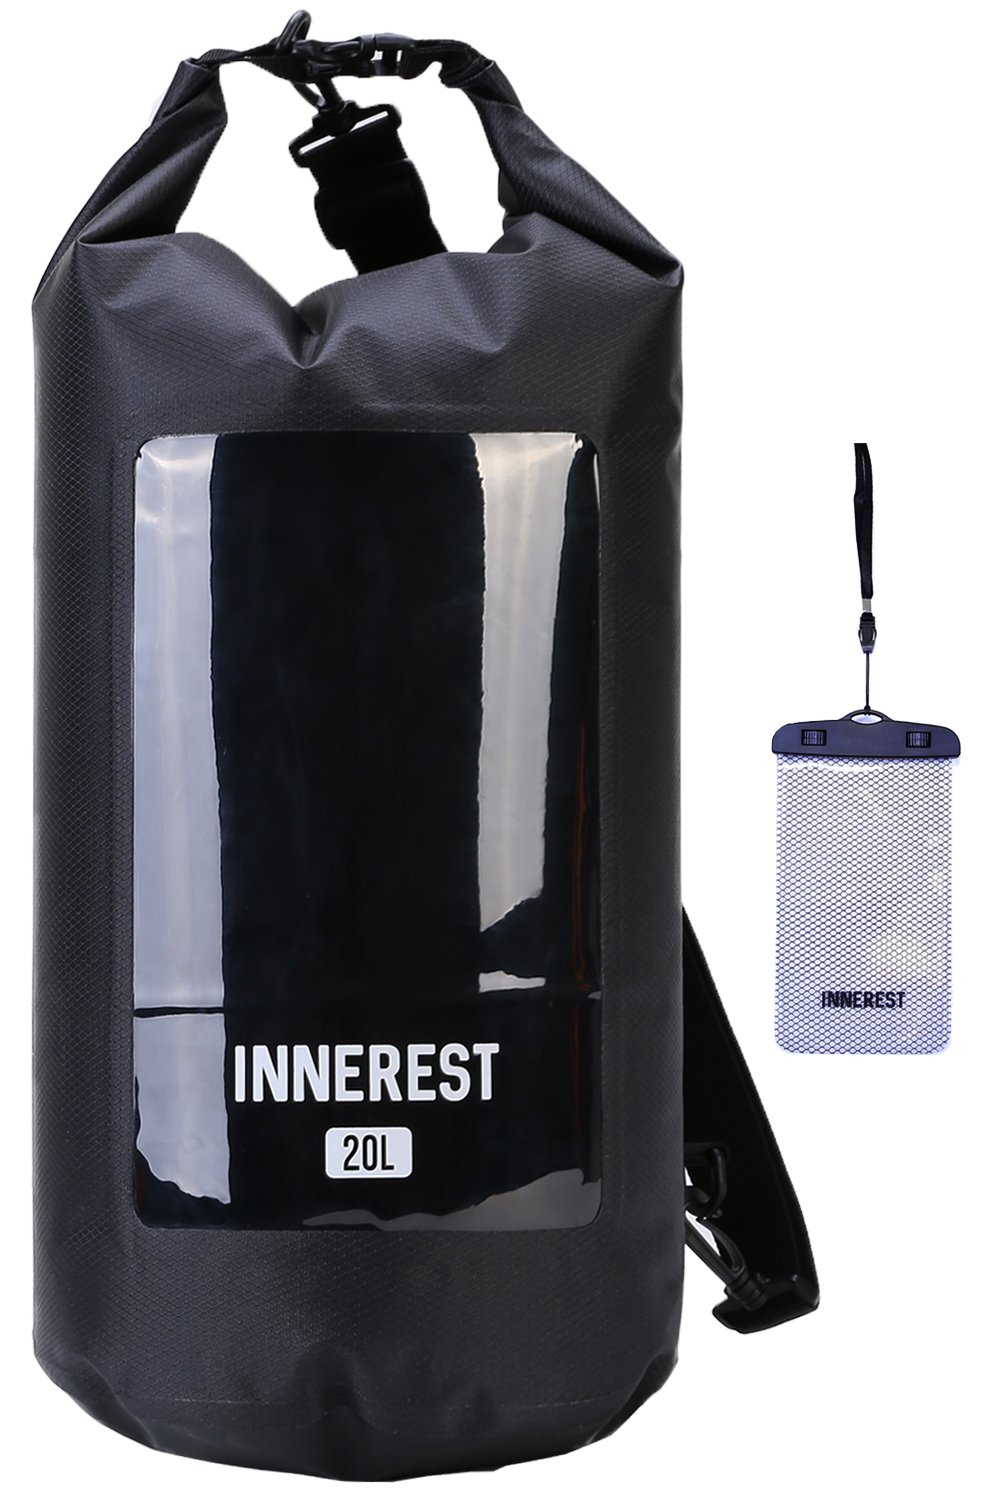 Innerest Waterproof Dry Bag Lightweight Sack for Outdoor Water Recreation Beach Boating Camping Fishing Kayaking with a